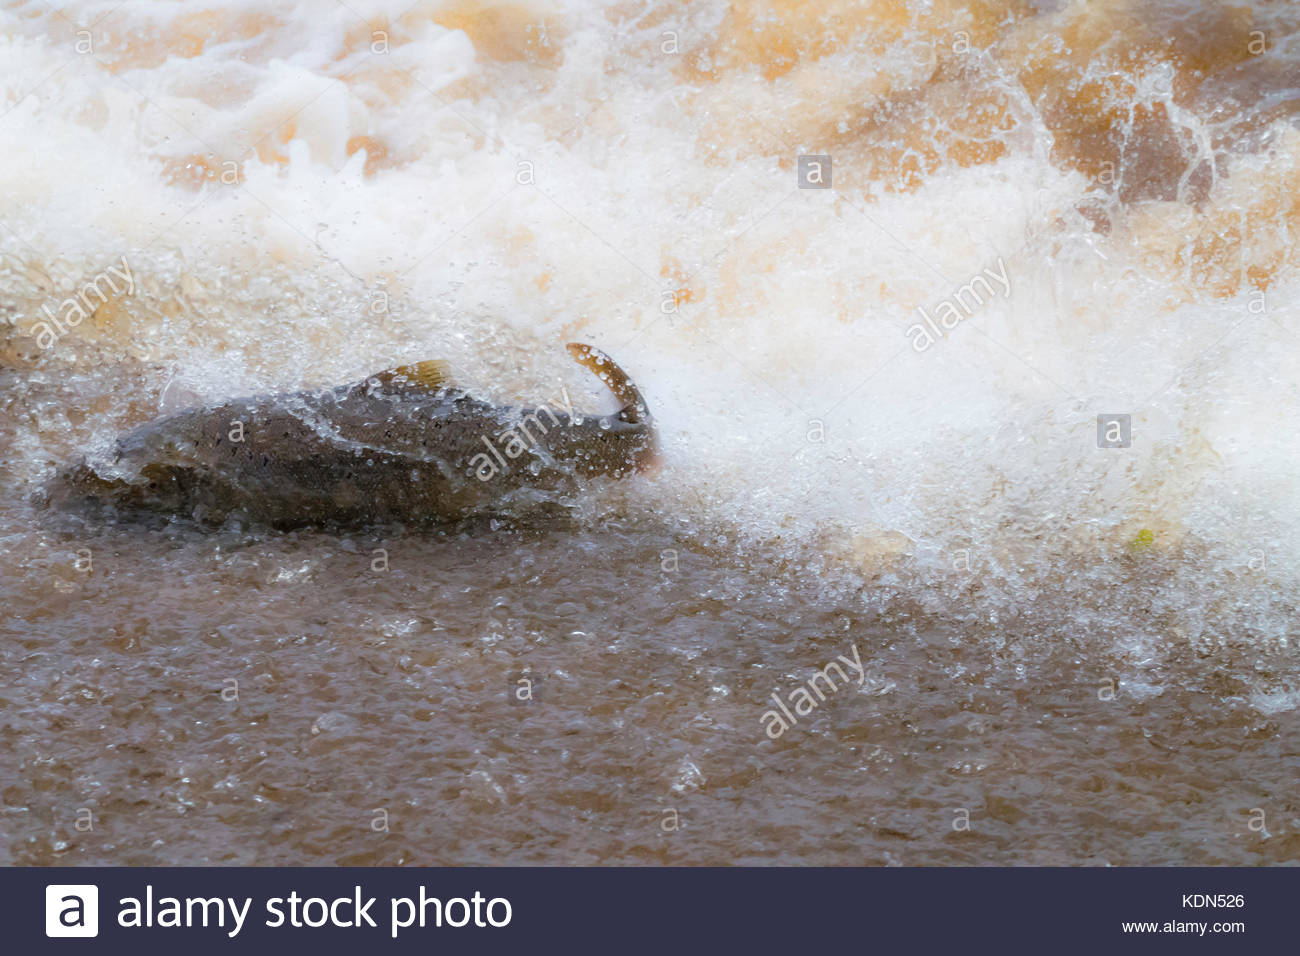 Selkirk, Scottish Borders, UK. 13th October 2017. An Atlantic Salmon (Salmo salar) leaps upstream over a cauld on - Stock Image